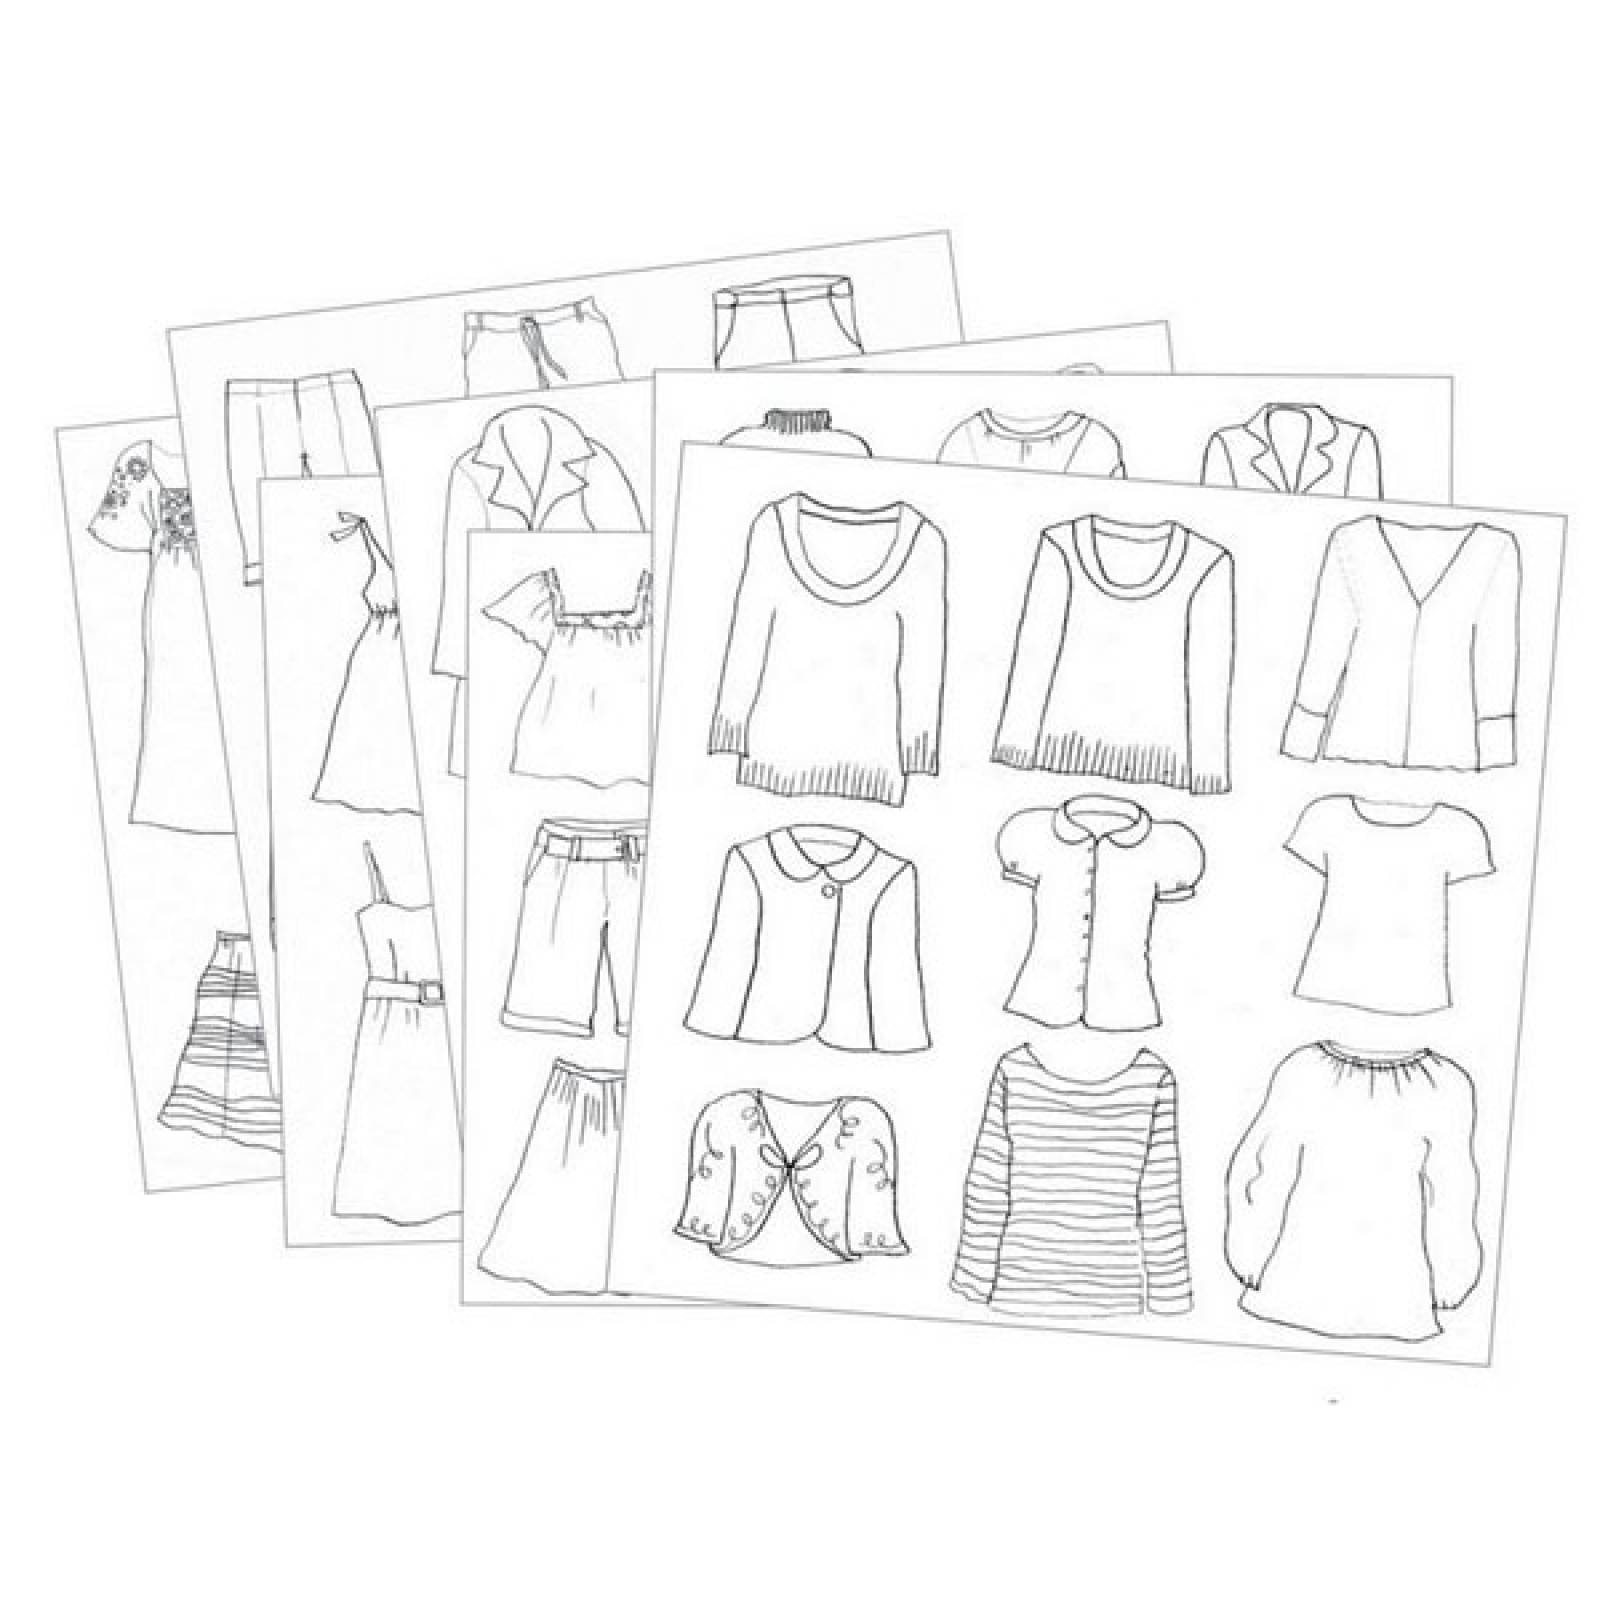 Fashion Drawings Art Set By Djeco Age 9-13yrs. thumbnails